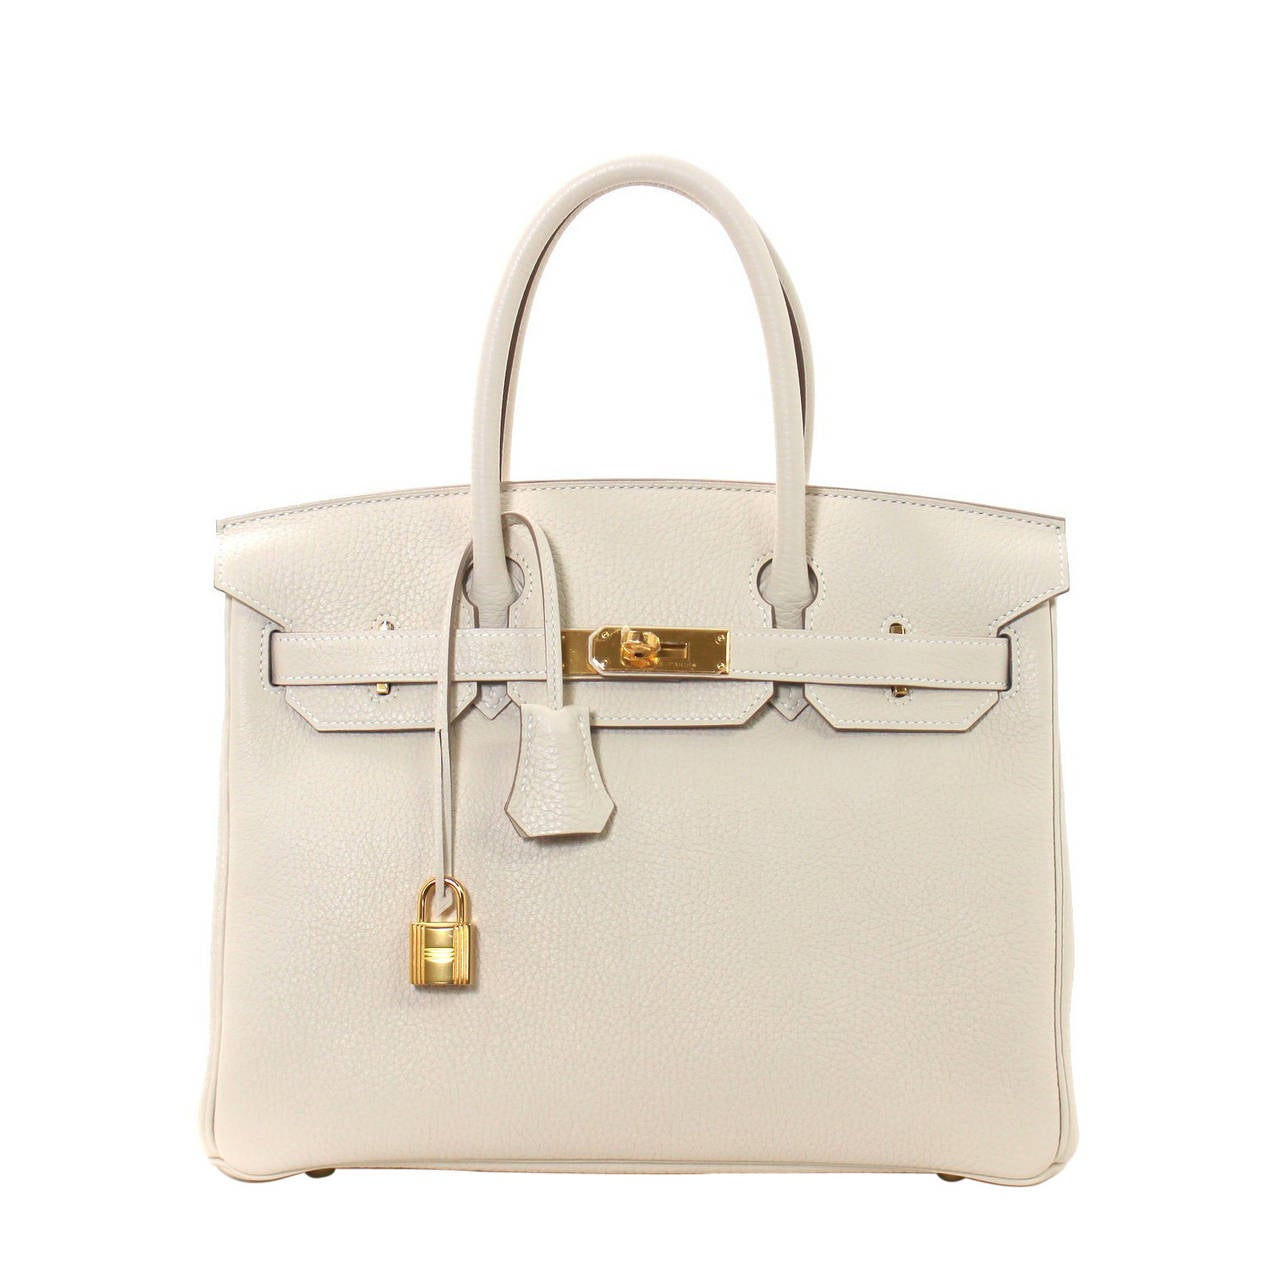 Hermes Birkin Bag in Craie Clemence with Gold- Bone color 30 cm 1